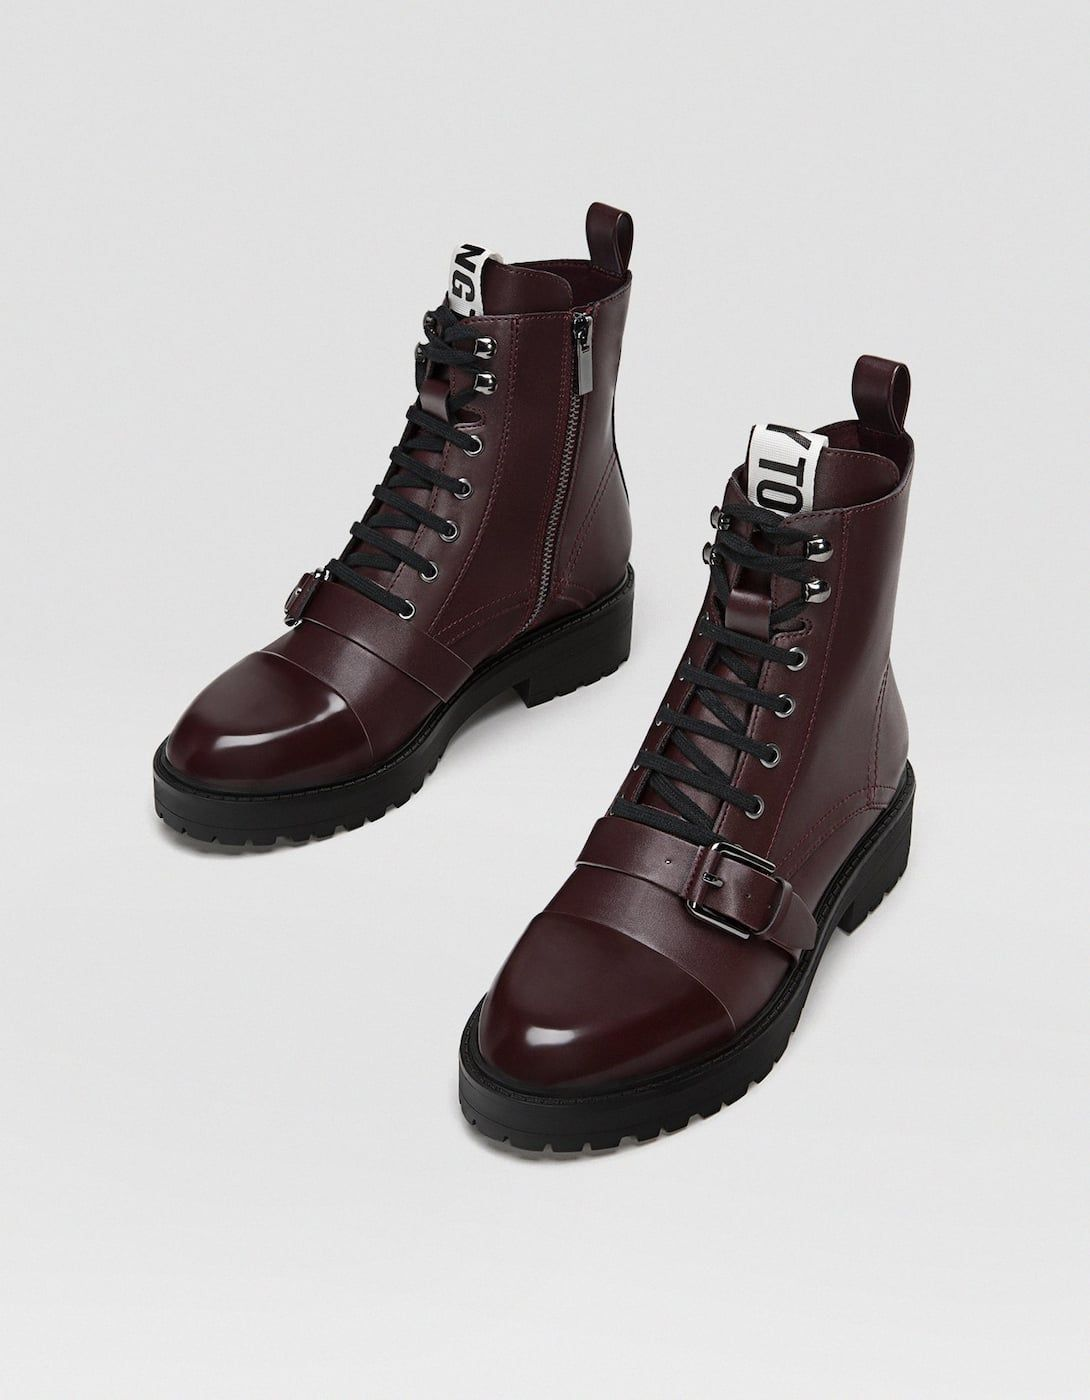 d8adfe389c3d0d Maroon lace-up biker ankle boots - Boots and ankle boots